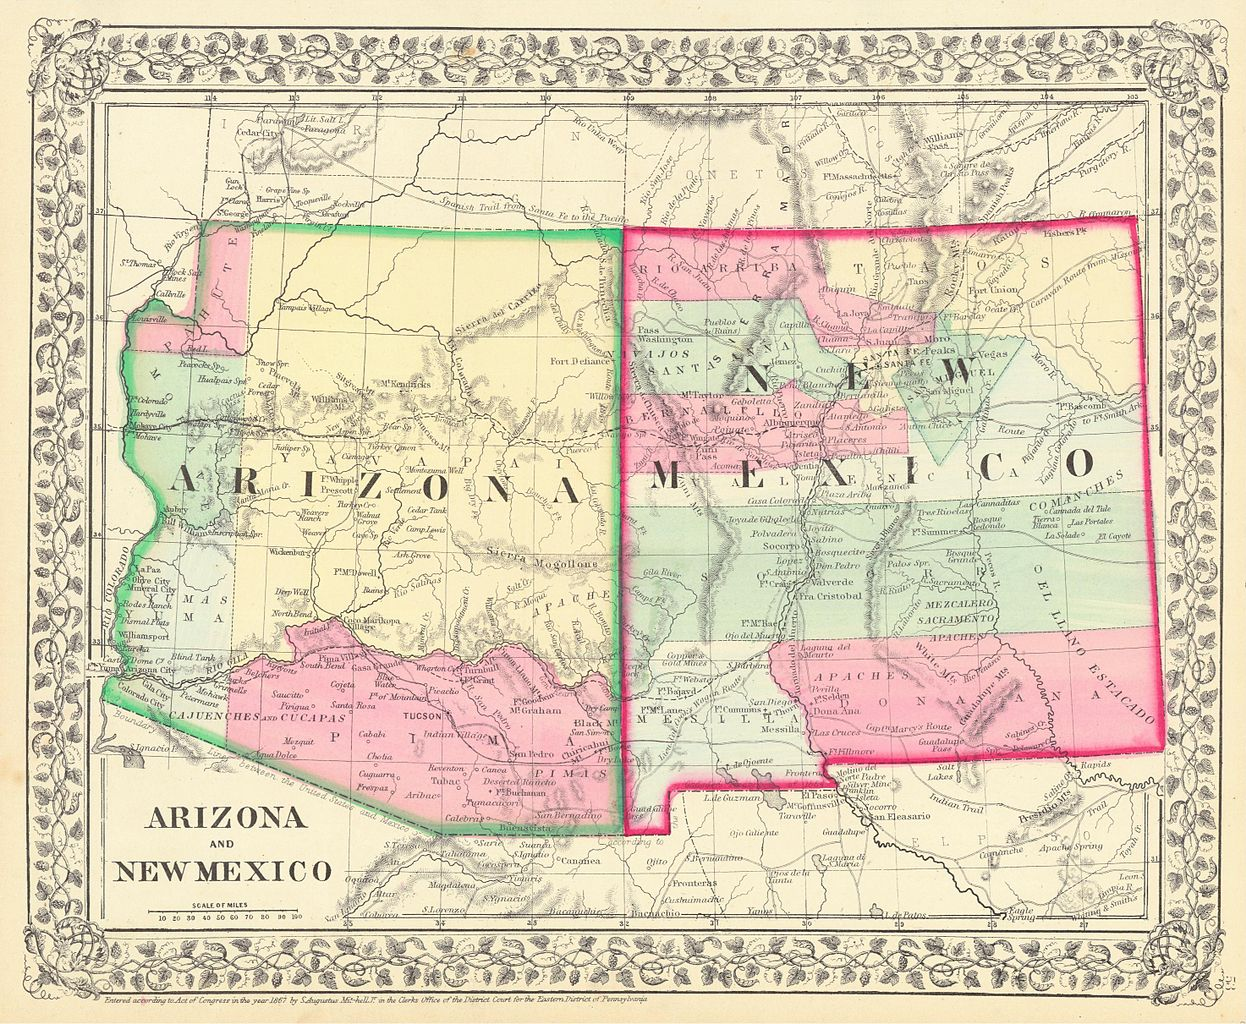 Map Of Arizona Indian Tribes.File Arizona And New Mexico Territories Map 1867 Jpg Wikimedia